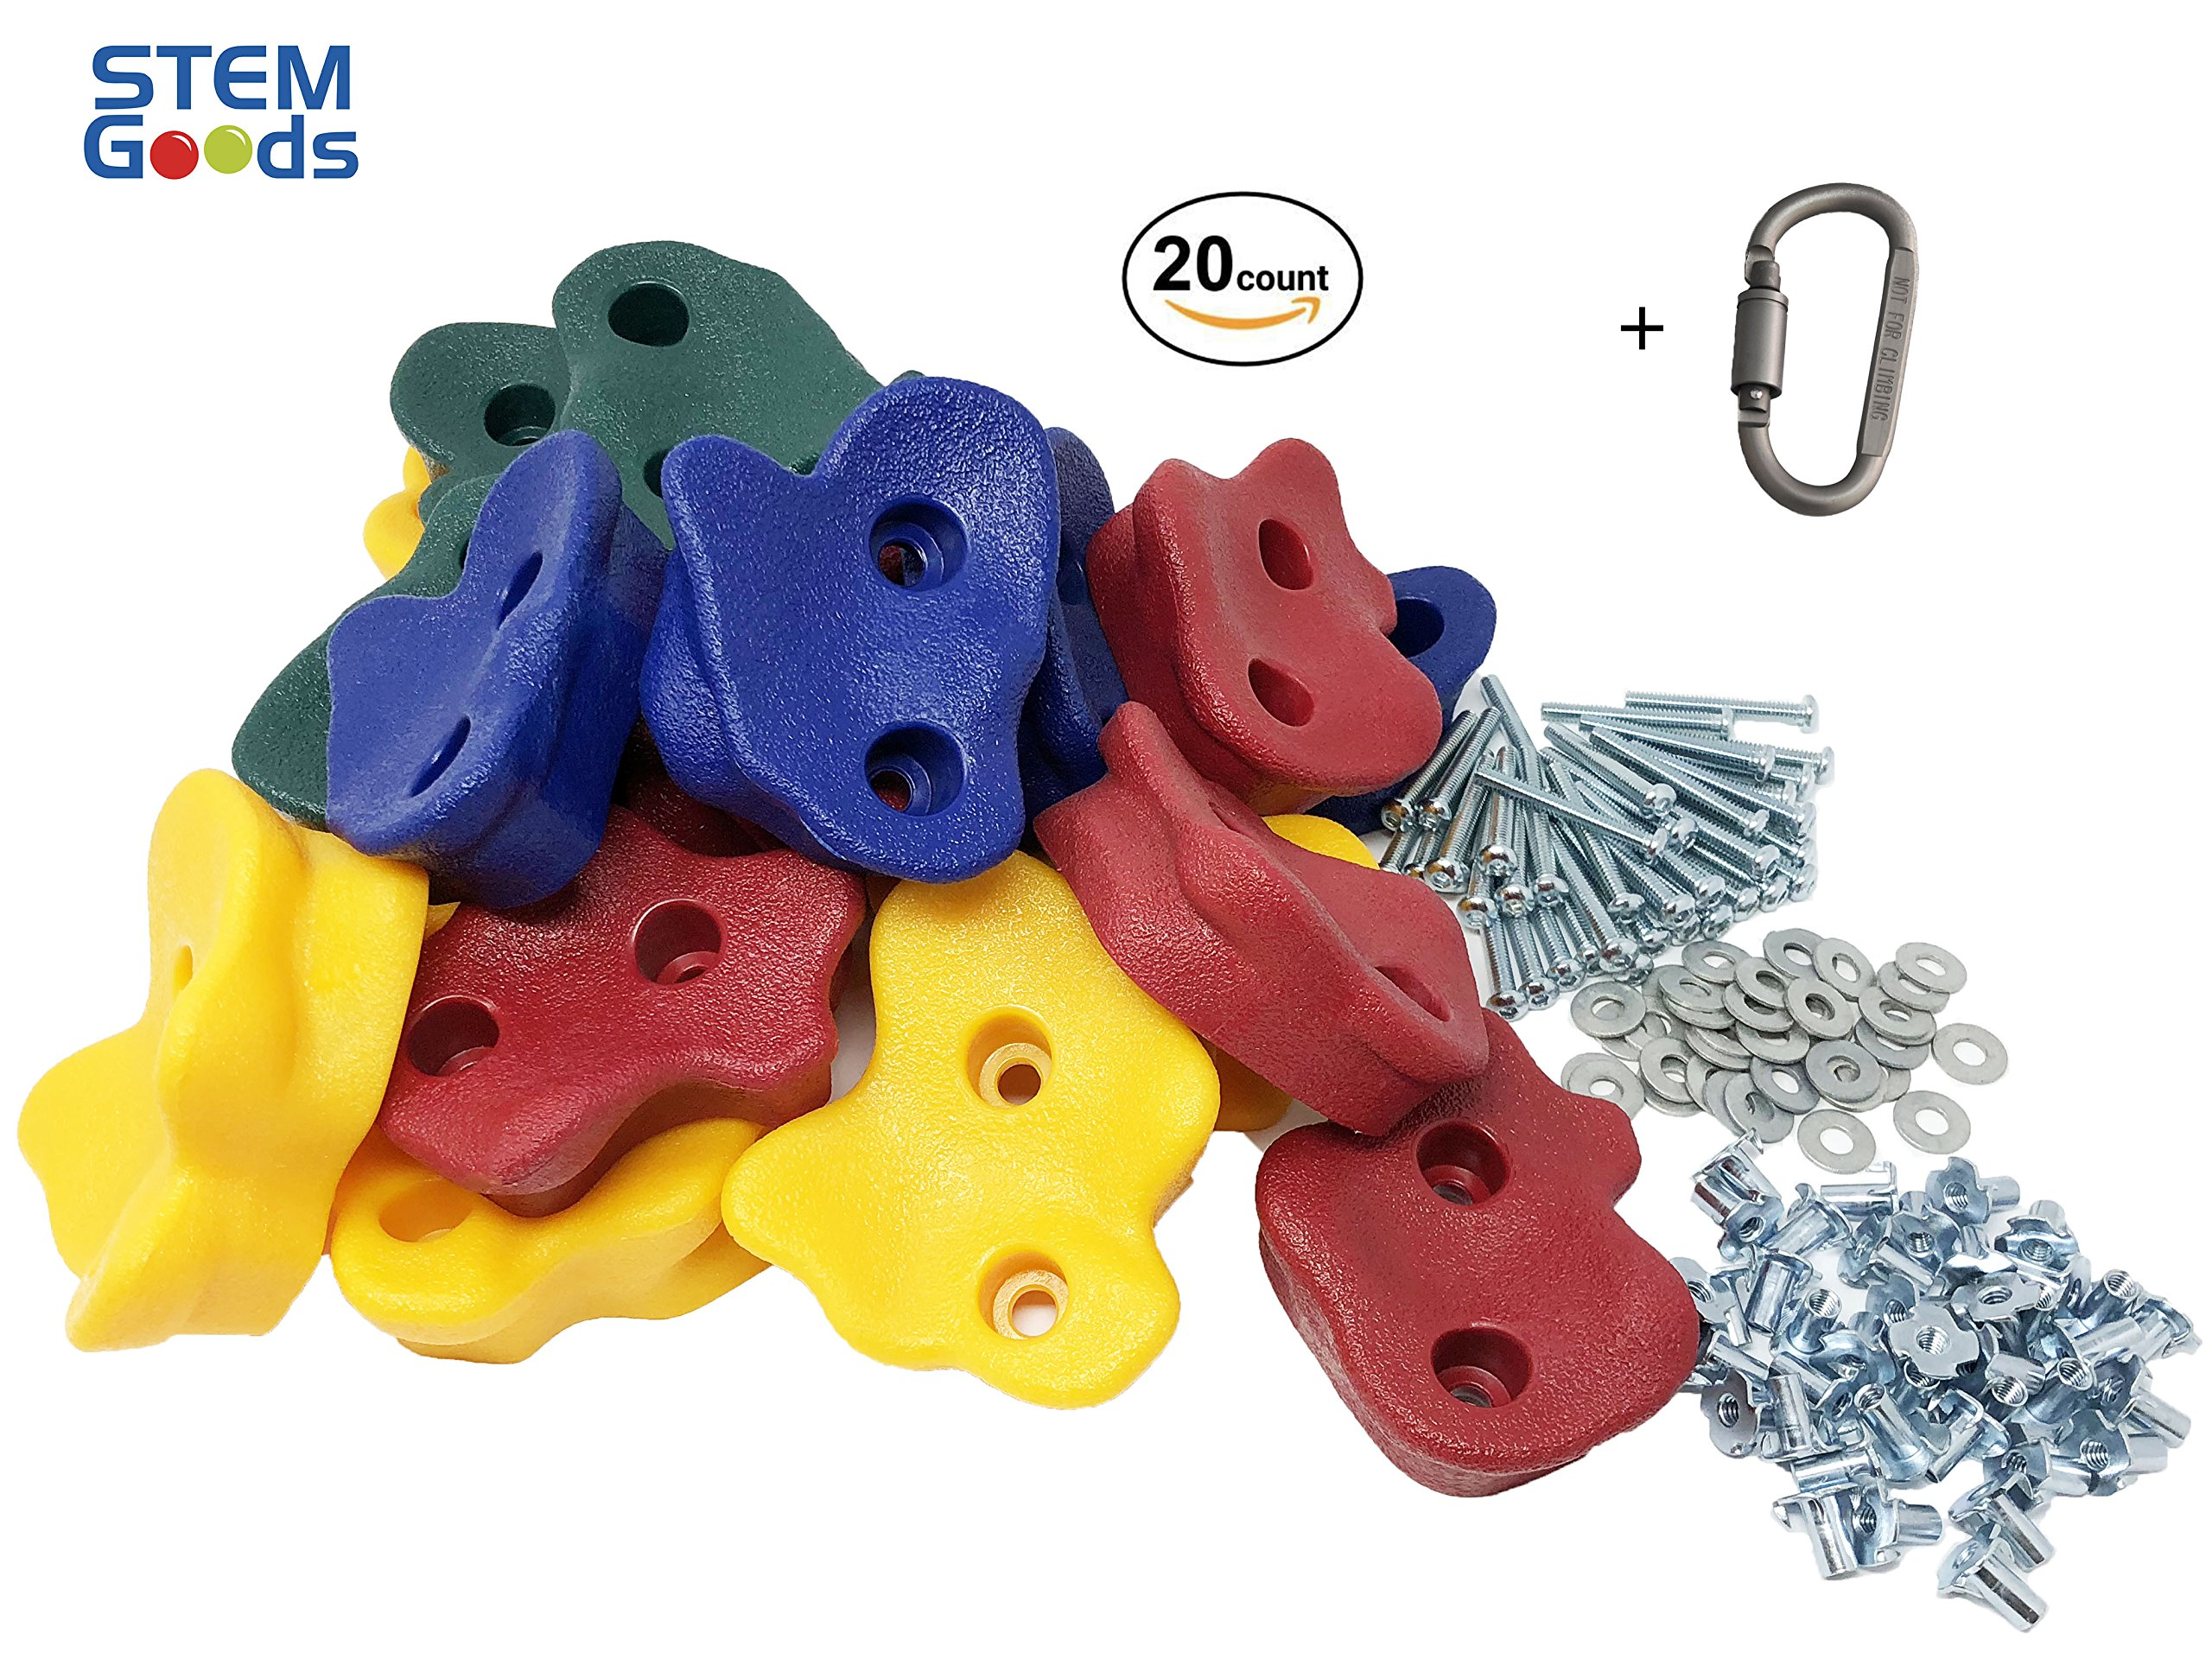 20 Premium Large Textured Kids Rock Climbing Wall Holds with Quality 2'' Mounting Hardware + Carabiner Clip + Installation Guide w Video! by STEM Goods